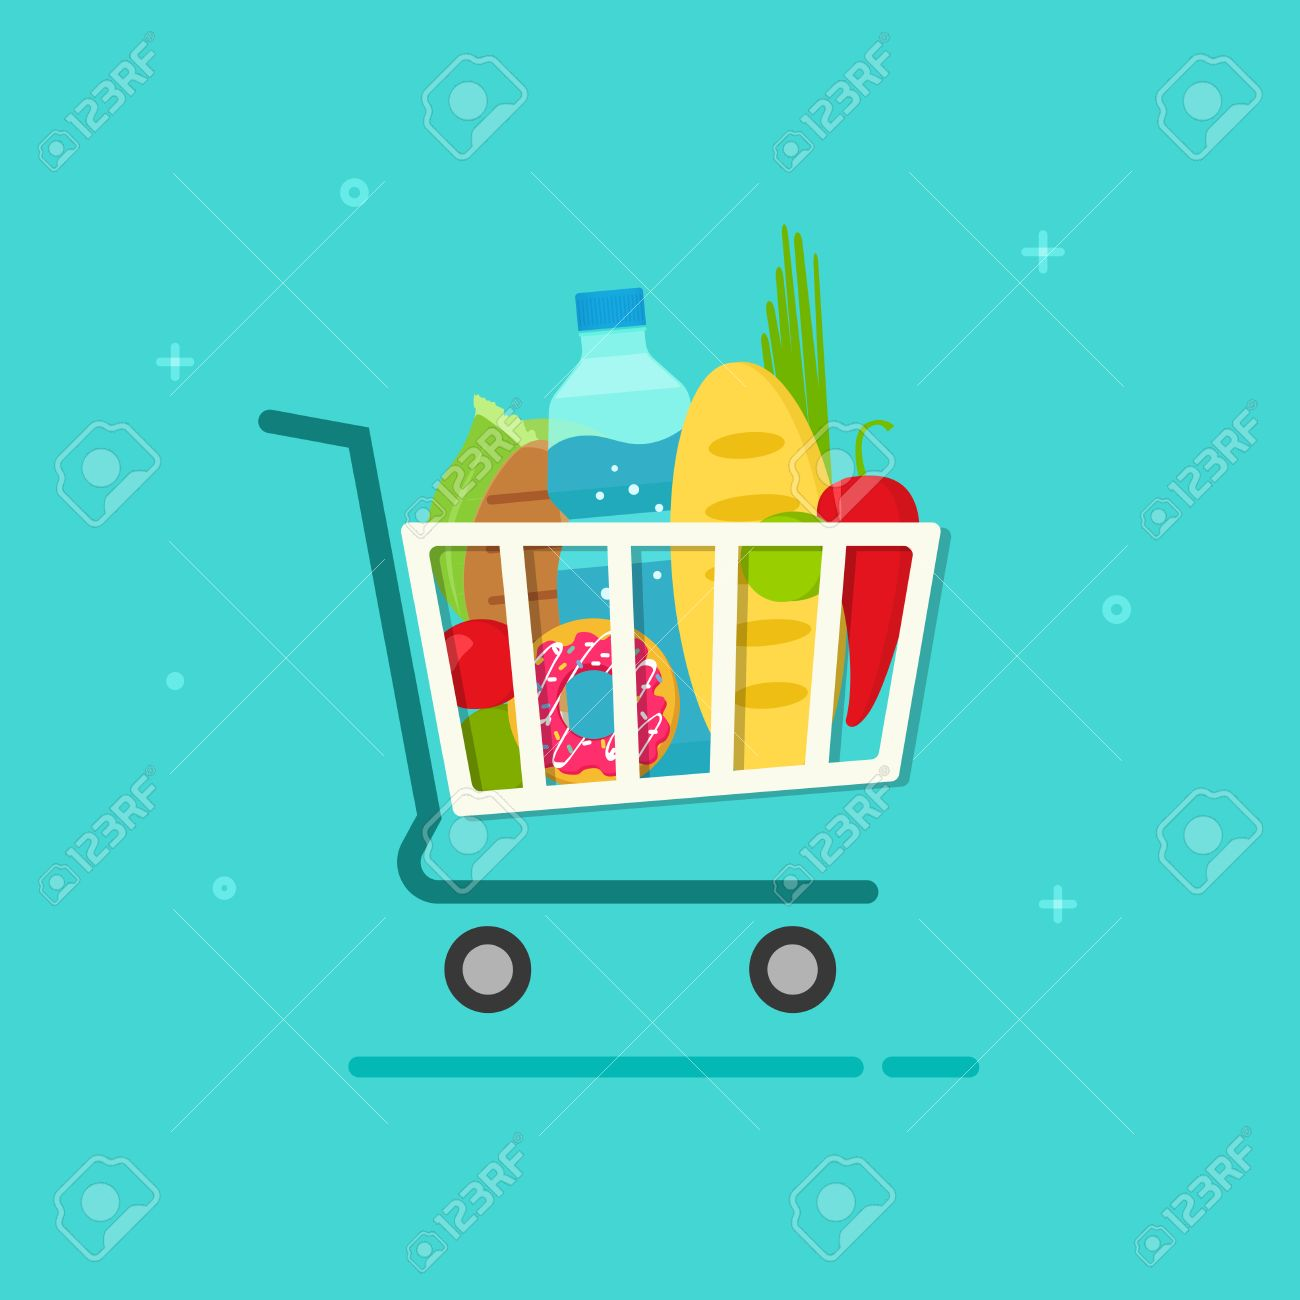 Grocery cart vector illustration isolated on color background, flat cartoon grocery shopping cart icon with fresh organic food products, groceries supermarket trolley - 57962295